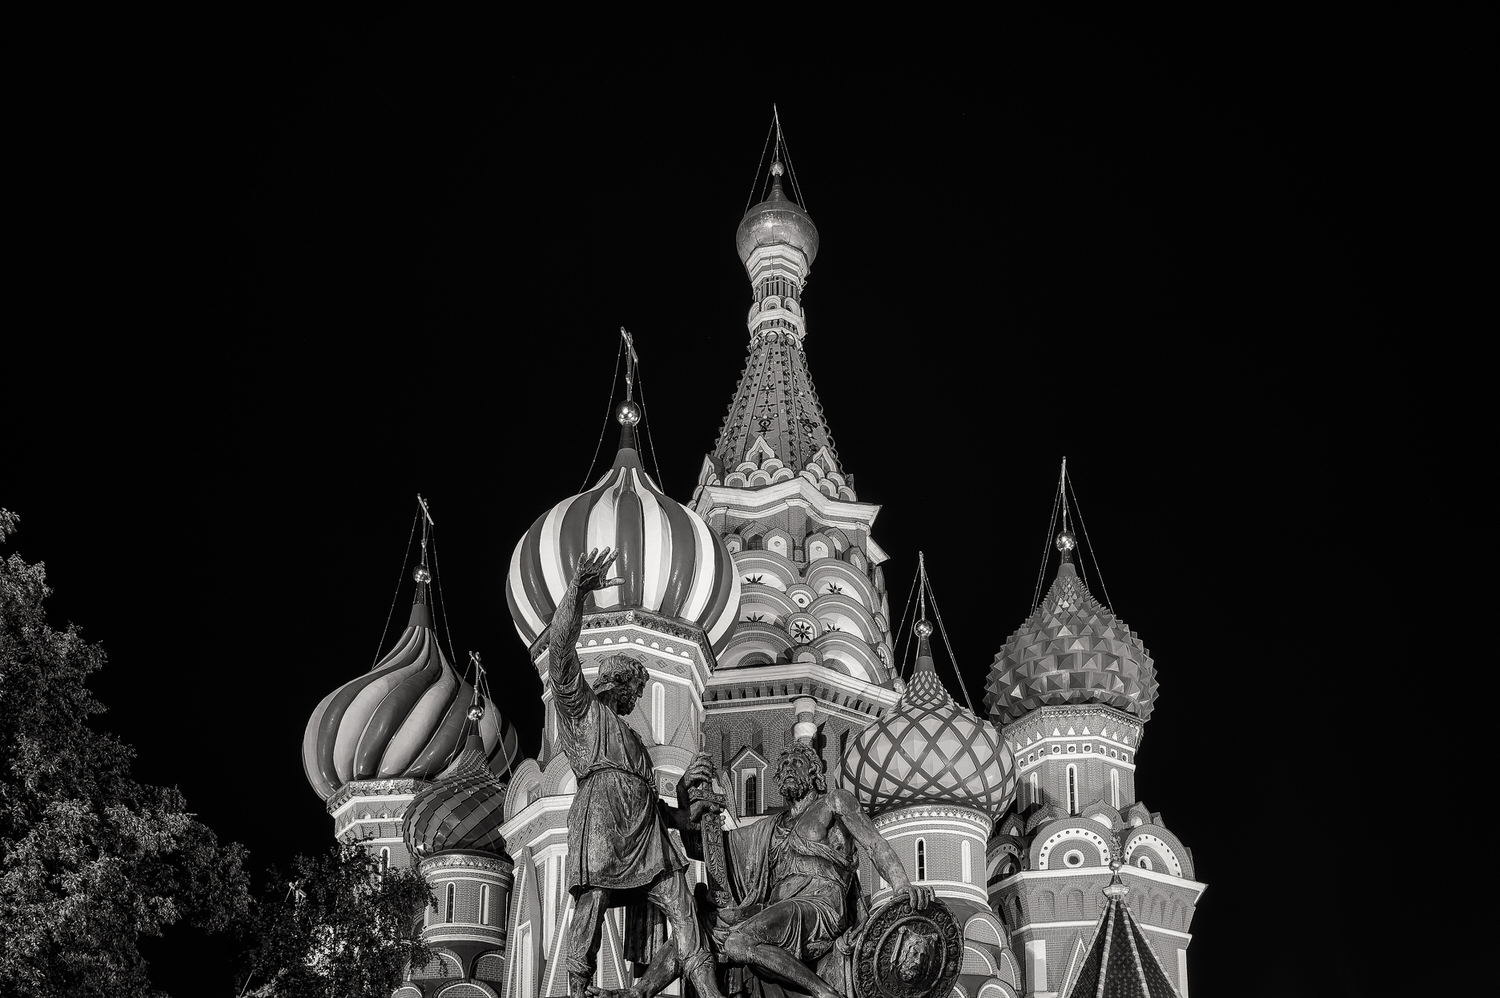 Statue of two heroes,    Minin and Prince Pozharsky   , in front of    St. Basil's Cathedral    at night in    Moscow, Russia.